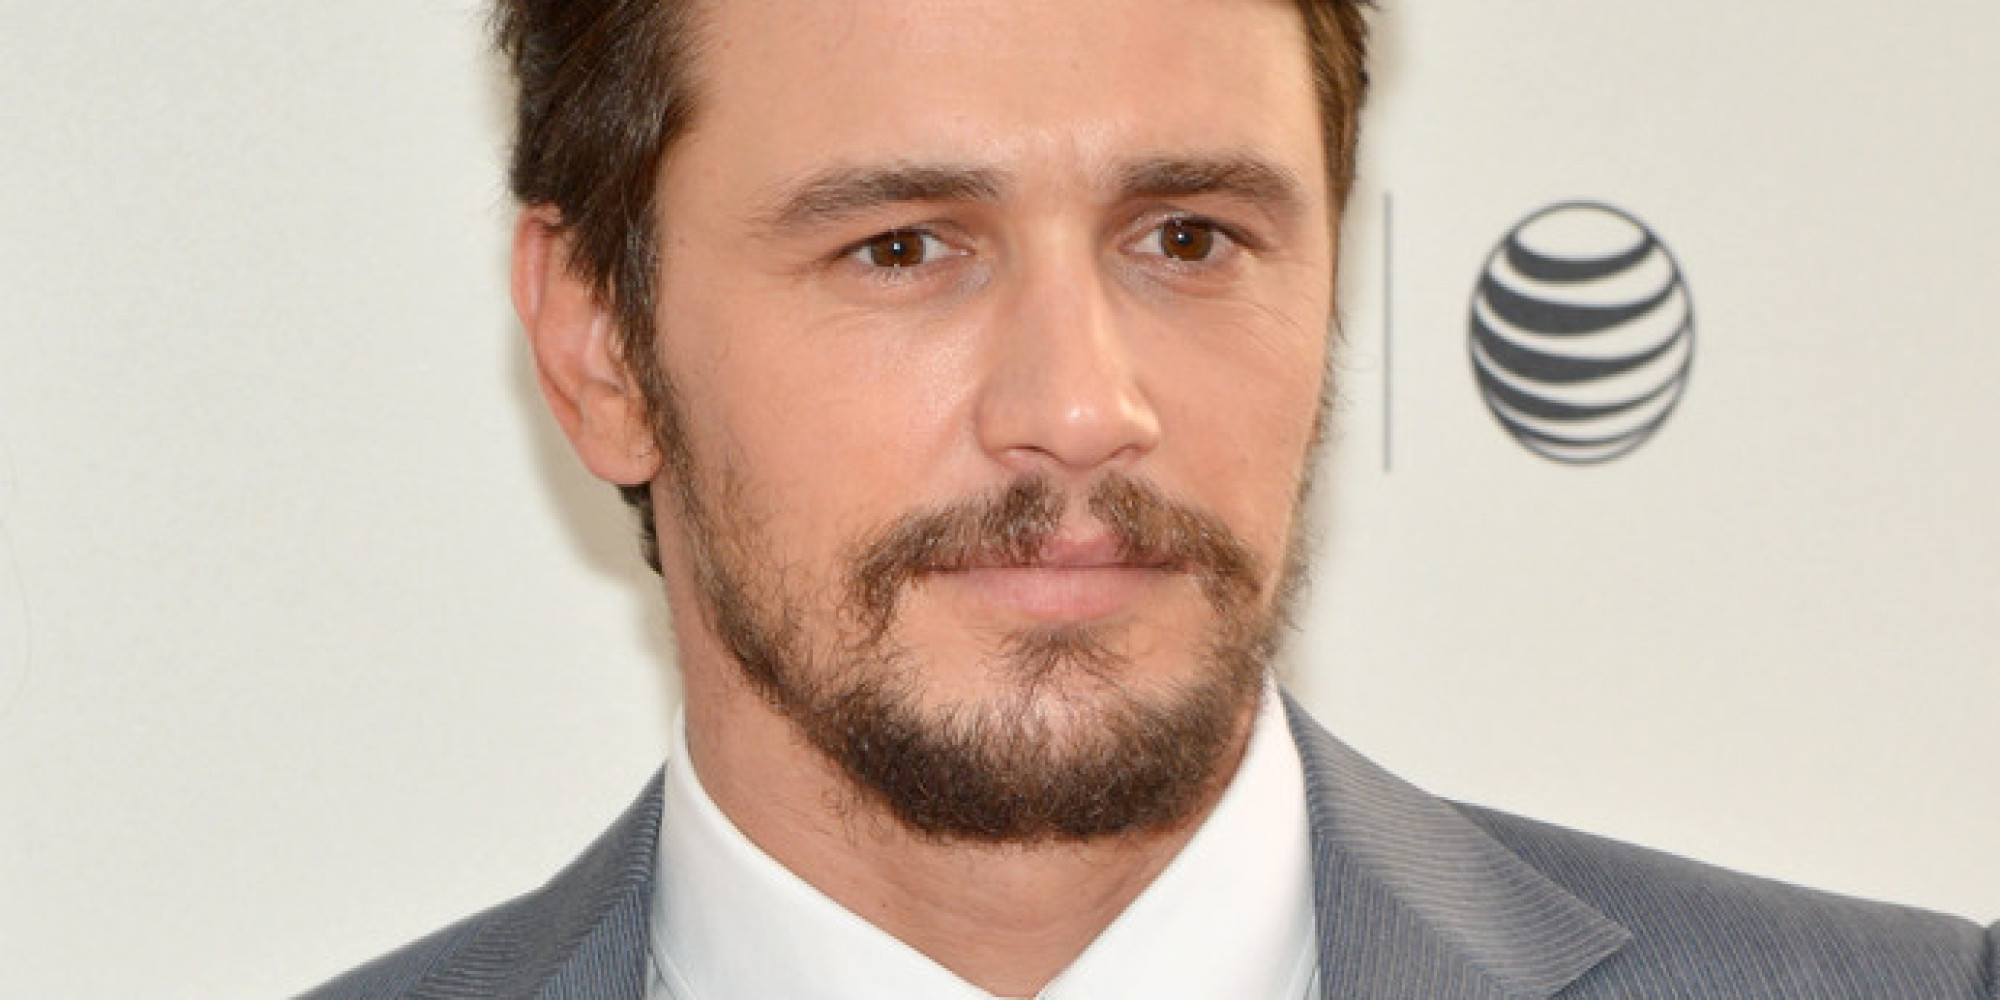 James Franco Beard james franco beard height and weights James Franco